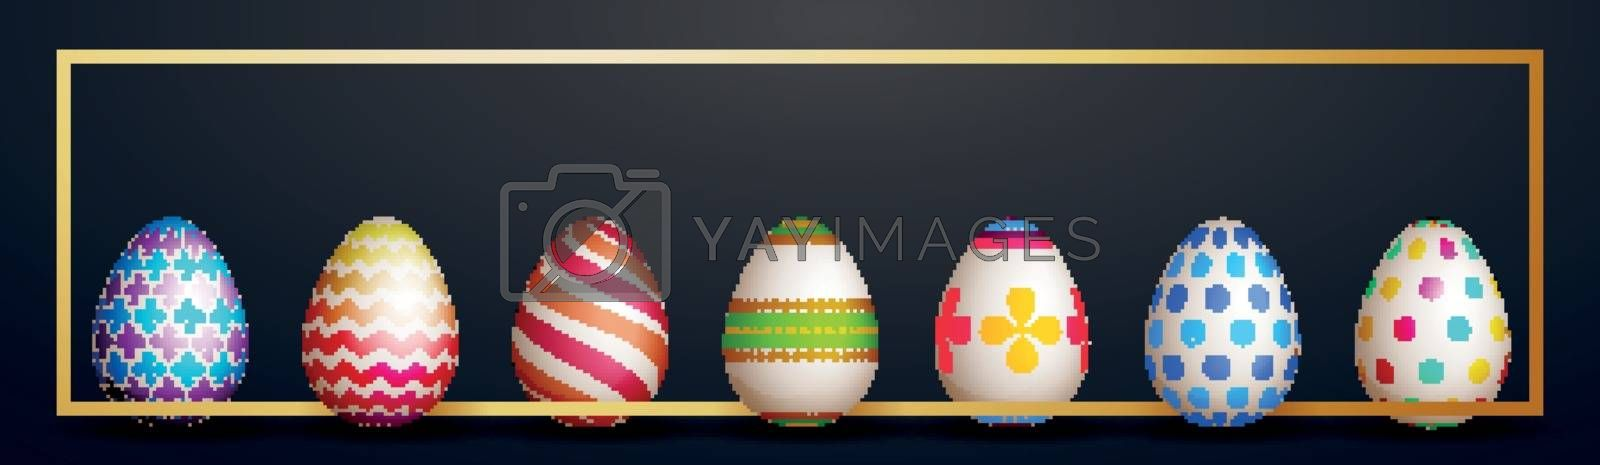 Easter banner design with colorful eggs.